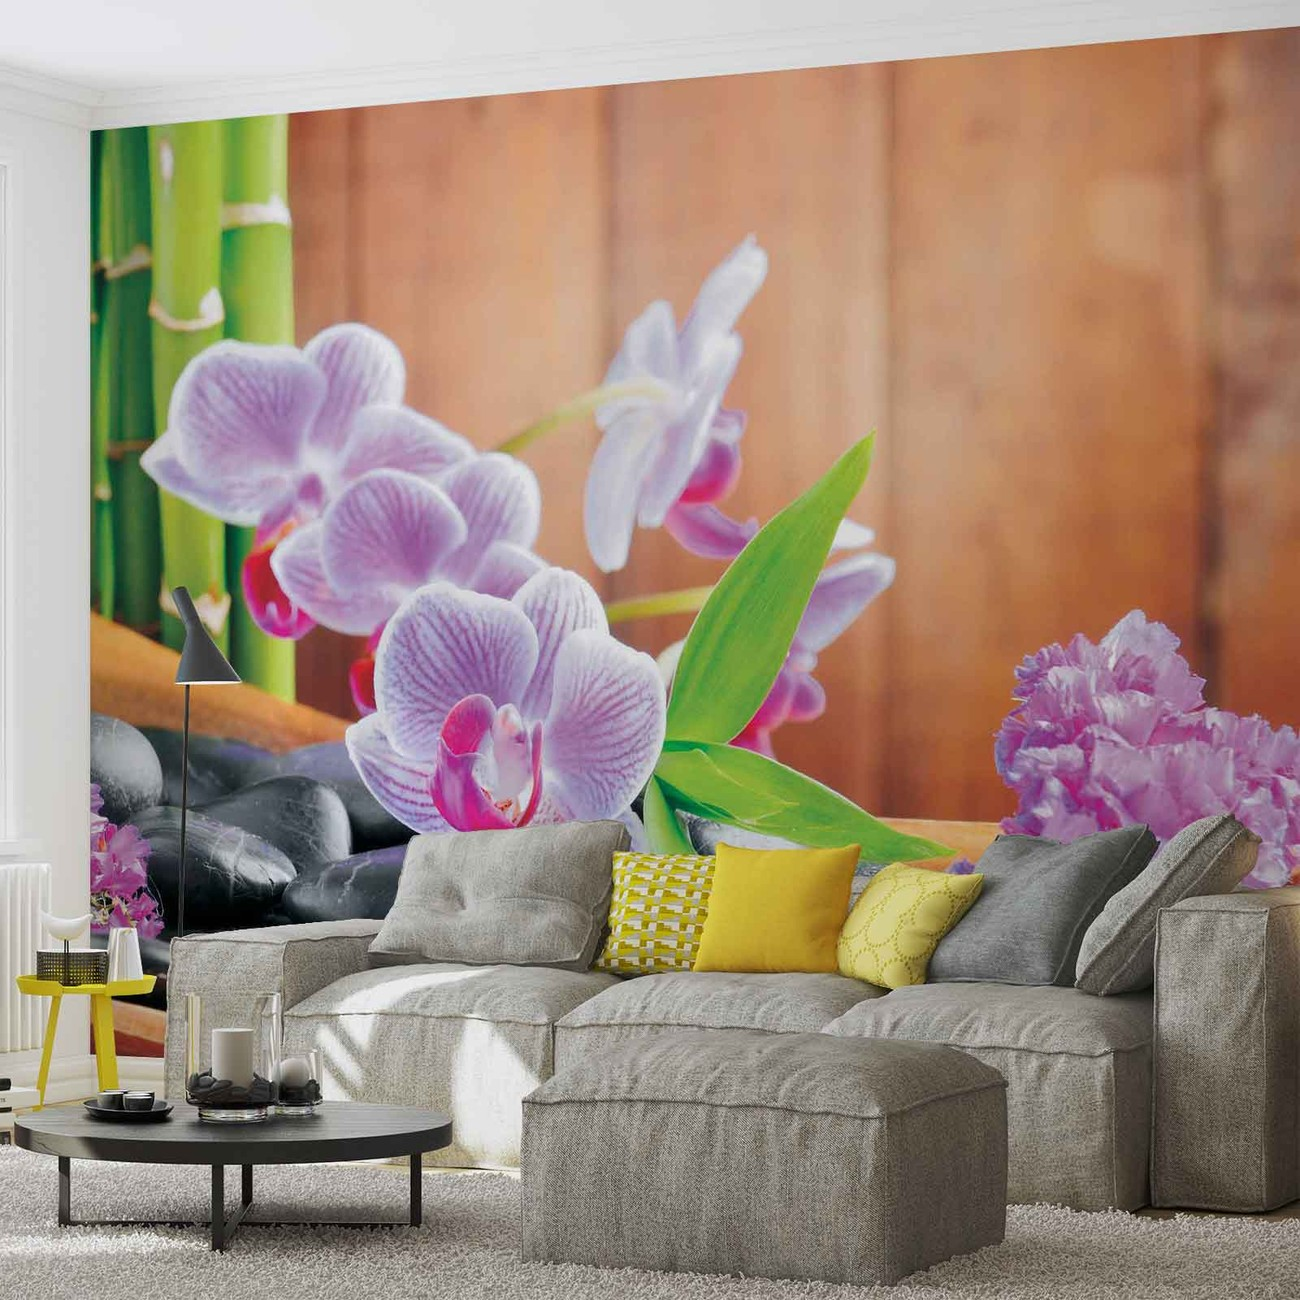 Flowers orchids zen wall paper mural buy at europosters for Poster mural zen deco